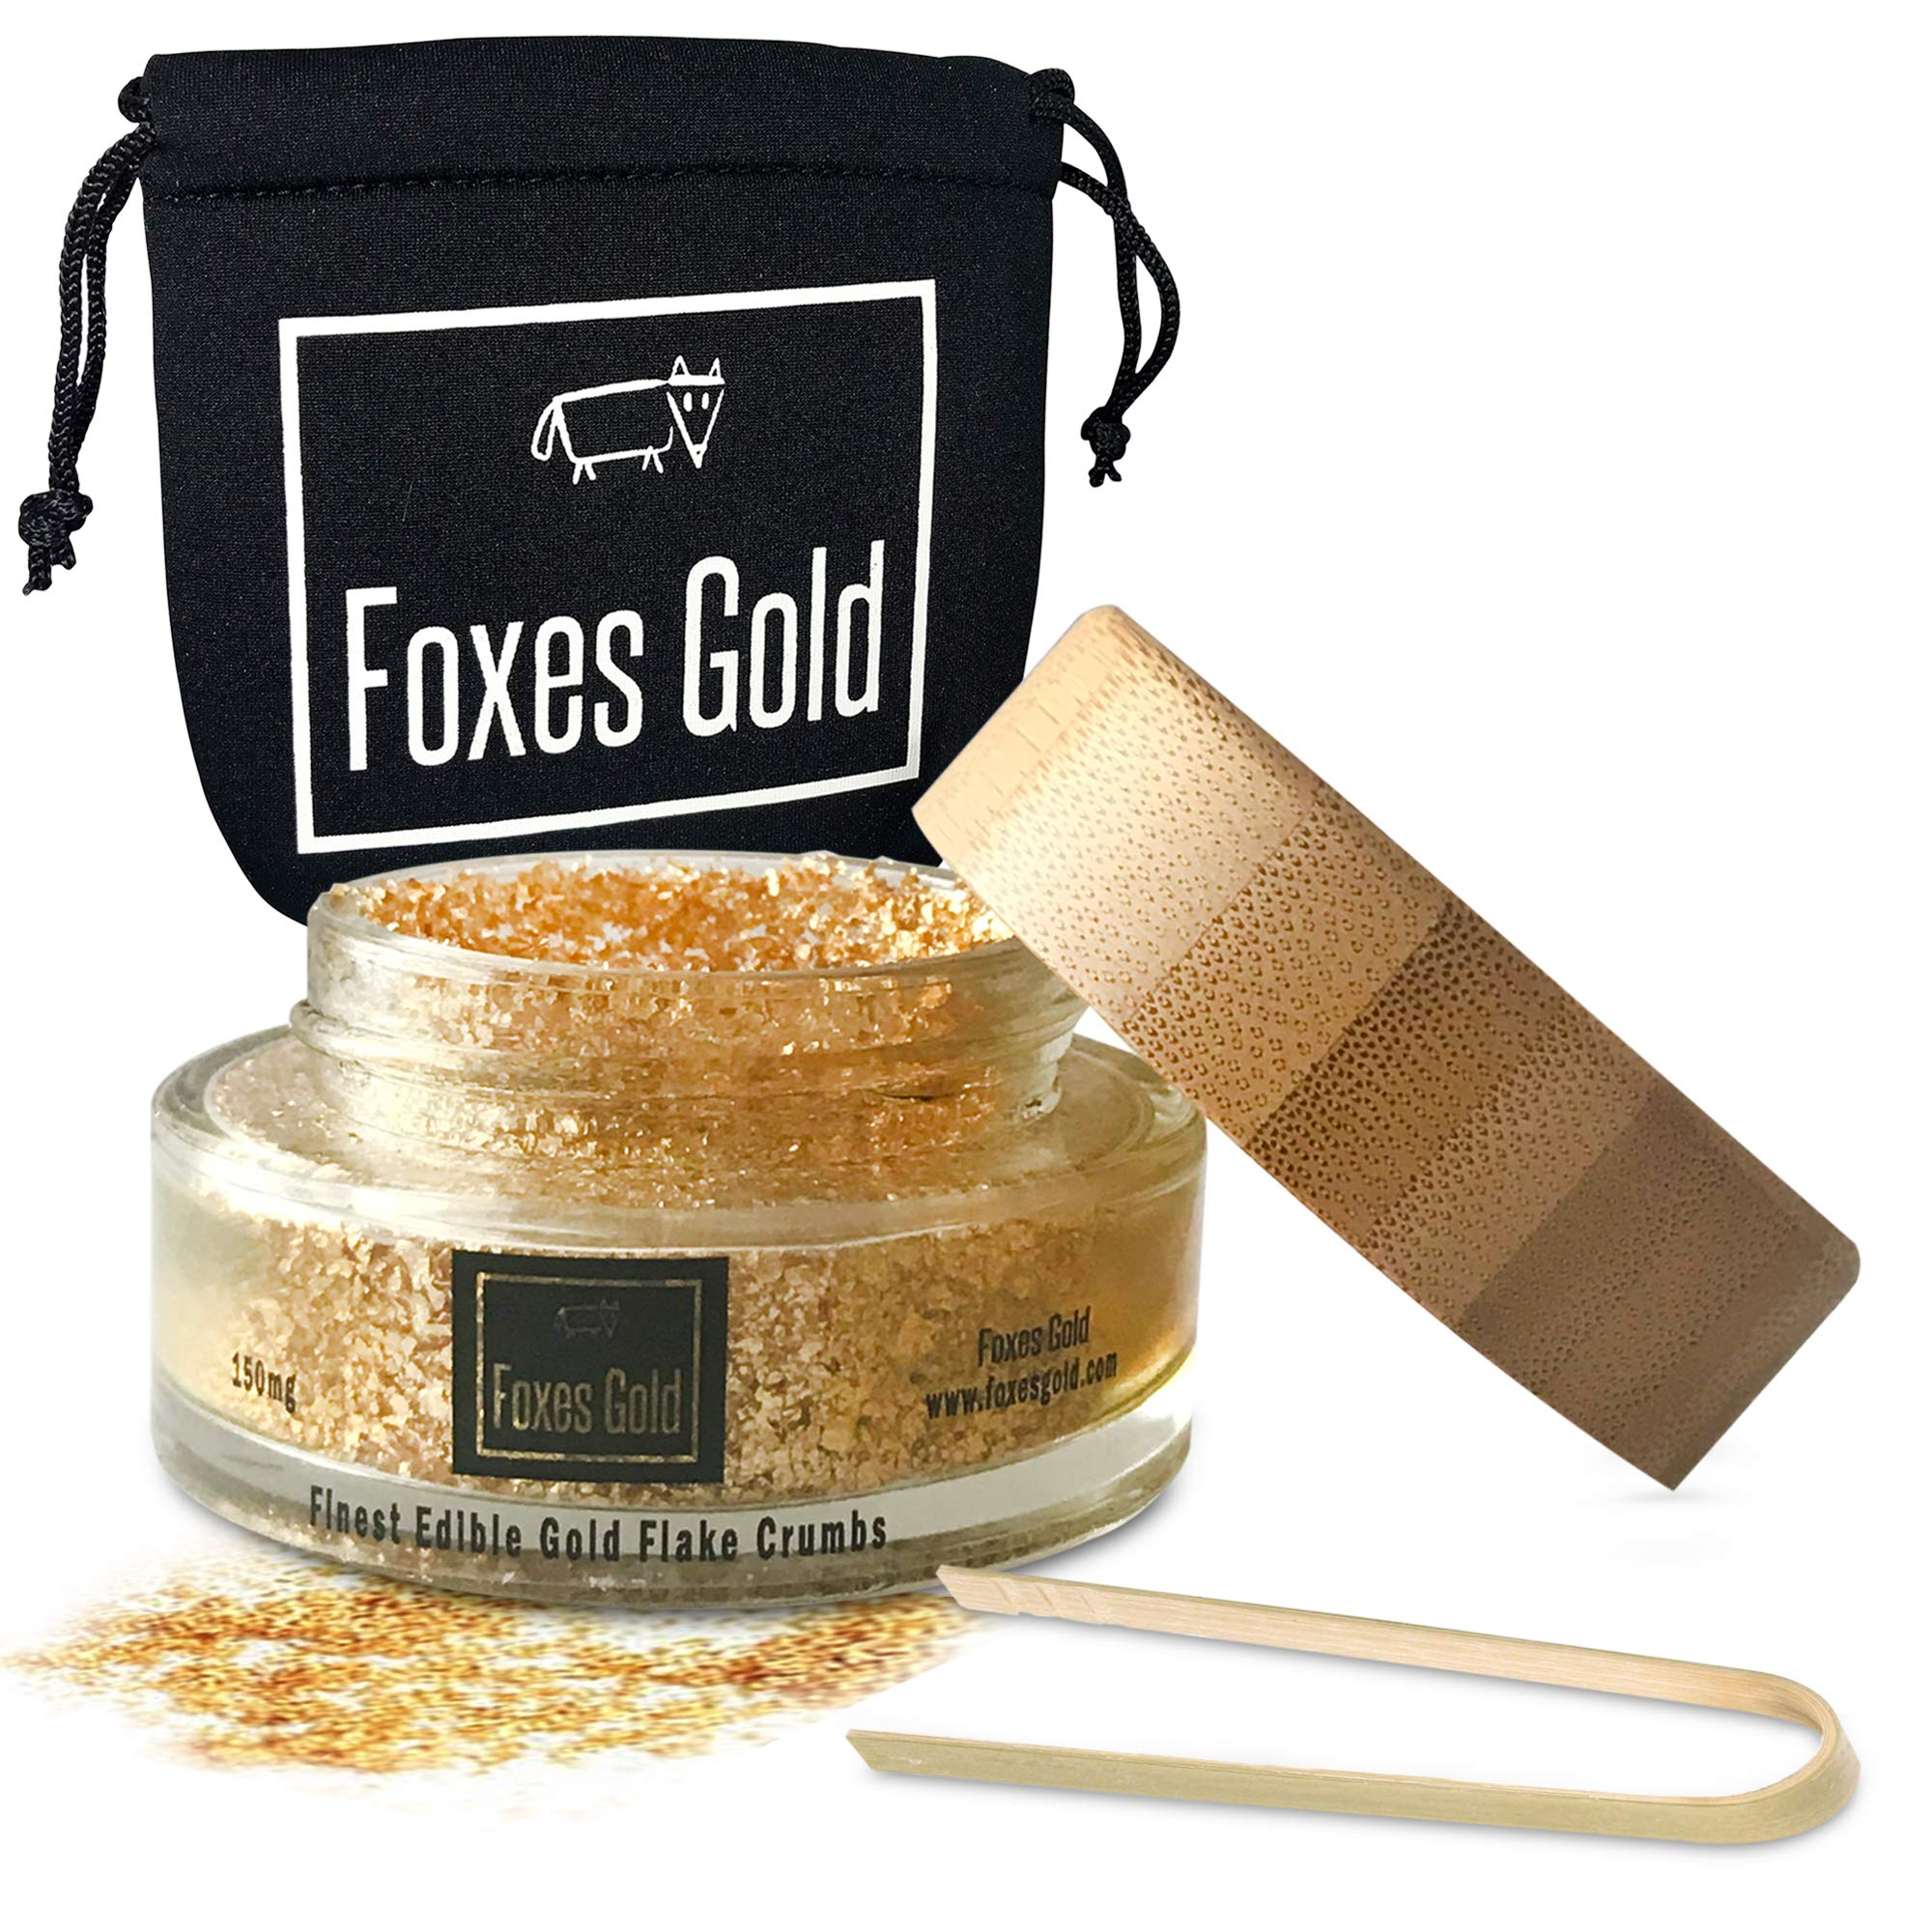 Edible Gold Flake Crumbs | Edible Glitter | Genuine Edible 23.75k Gold | simply sprinkle to add golden glitter to food, cake decorations, drinks weddings, parties & anything! - 150mg Jar by Foxes Gold